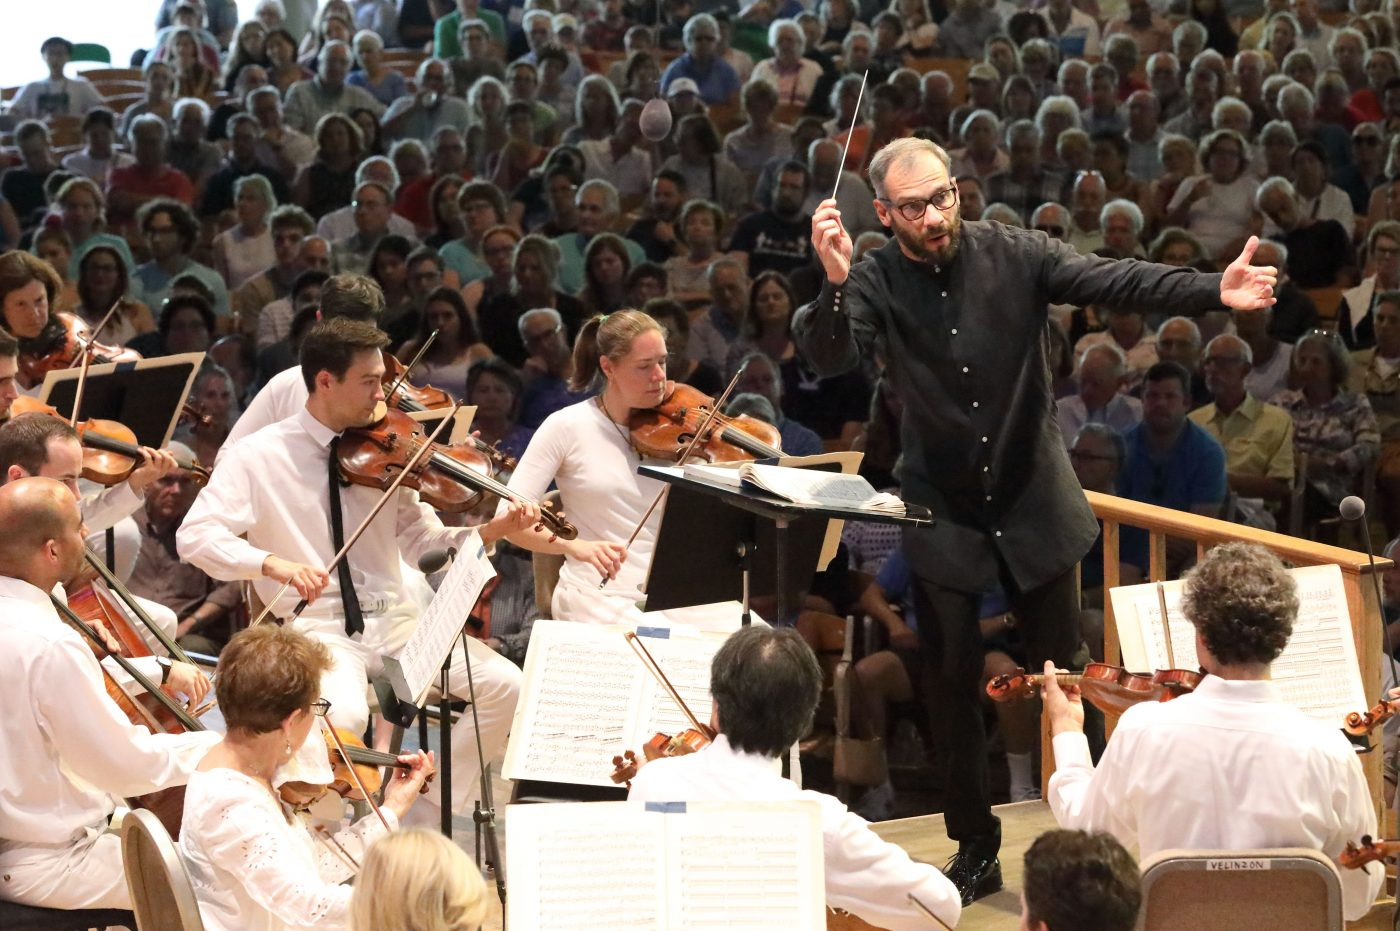 Dima Slobodeniouk leads this Boston Symphony Orchestra at Tanglewood, 2019. Photo Hilary Scott.